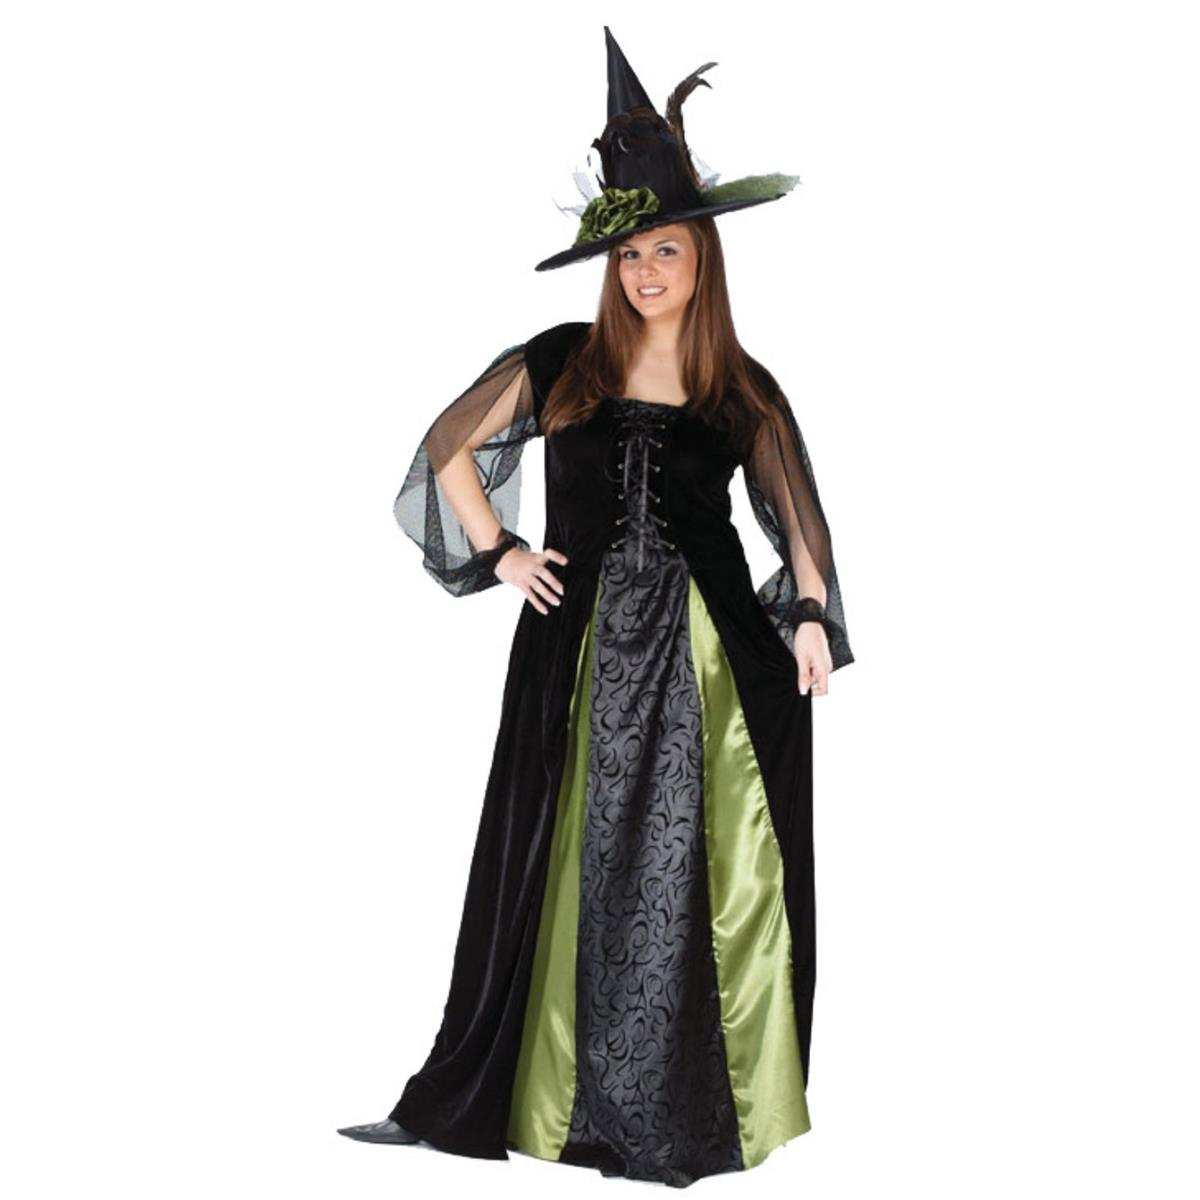 acomes | Rakuten Global Market: Halloween costumes &amp ...